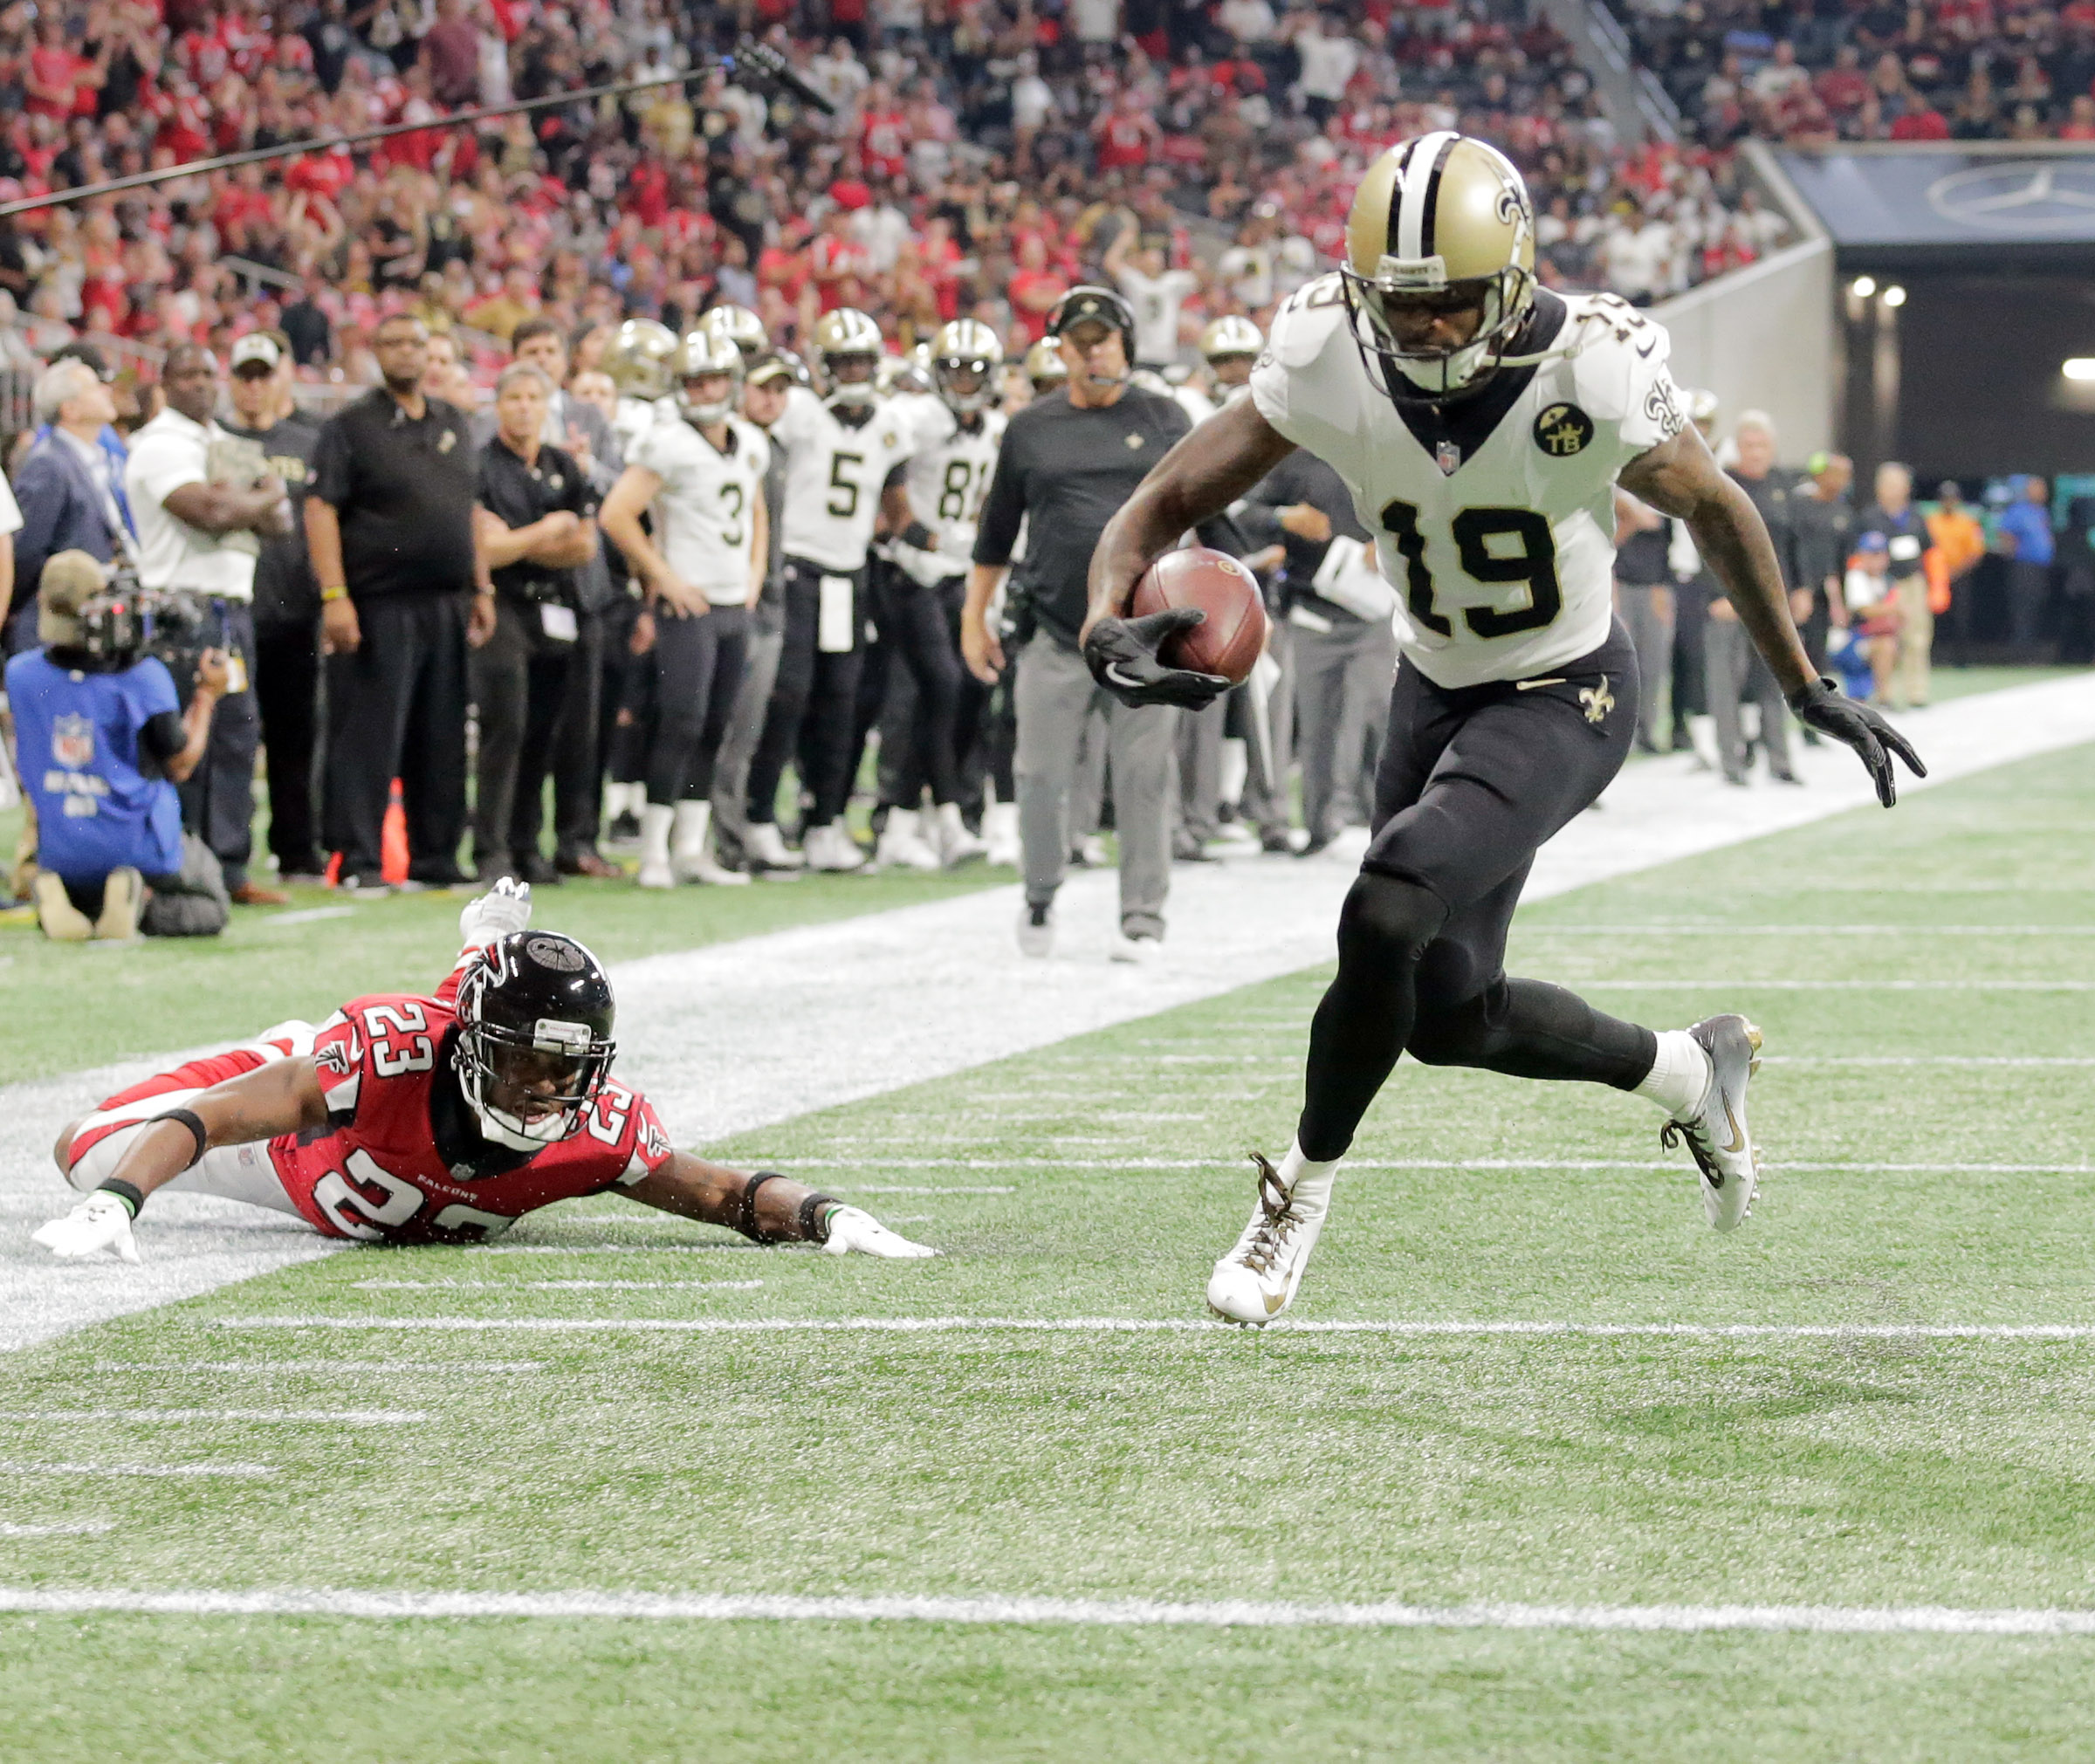 New Orleans Saints wide receiver Ted Ginn (19) shakes off Atlanta Falcons defensive back Robert Alford (23) for a four-yard TD during the game at Mercedes-Benz Stadium in Atlanta, Ga. Sunday, Sept. 23, 2018. (Photo by David Grunfeld, NOLA.com | The Times-Picayune)